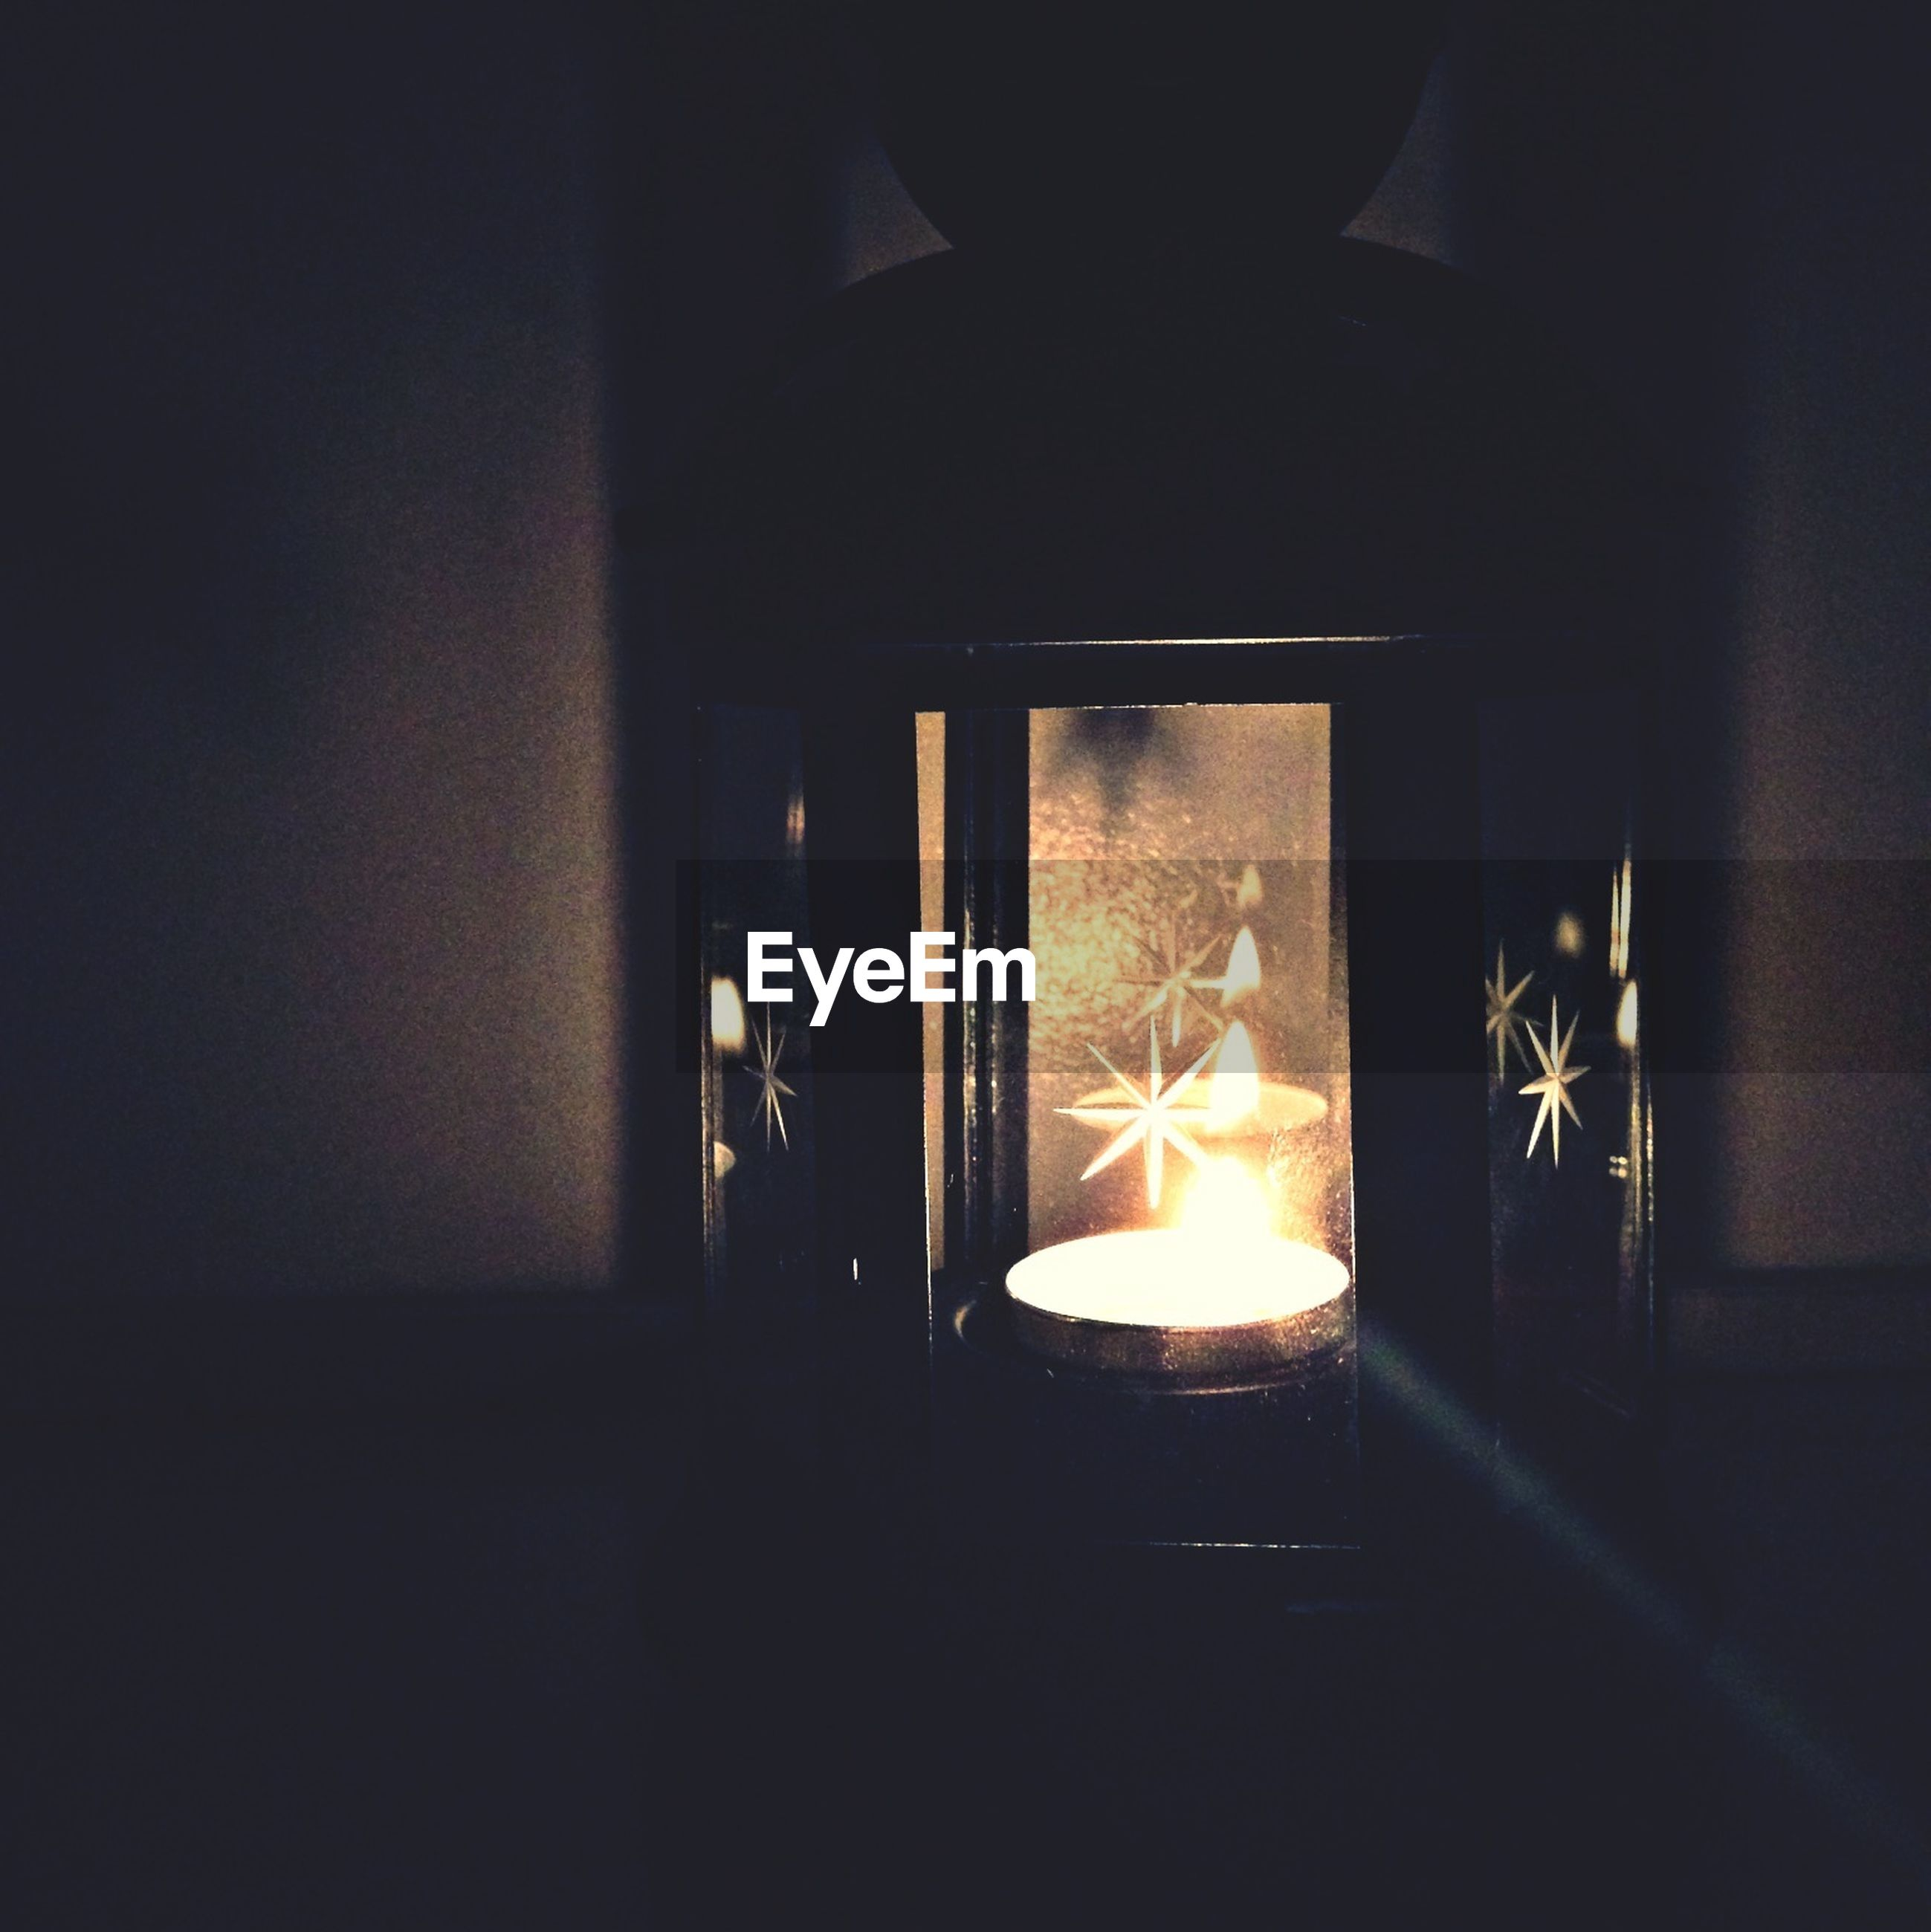 indoors, illuminated, dark, night, glowing, darkroom, window, no people, light - natural phenomenon, wall - building feature, home interior, lighting equipment, house, close-up, copy space, built structure, glass - material, burning, room, fire - natural phenomenon